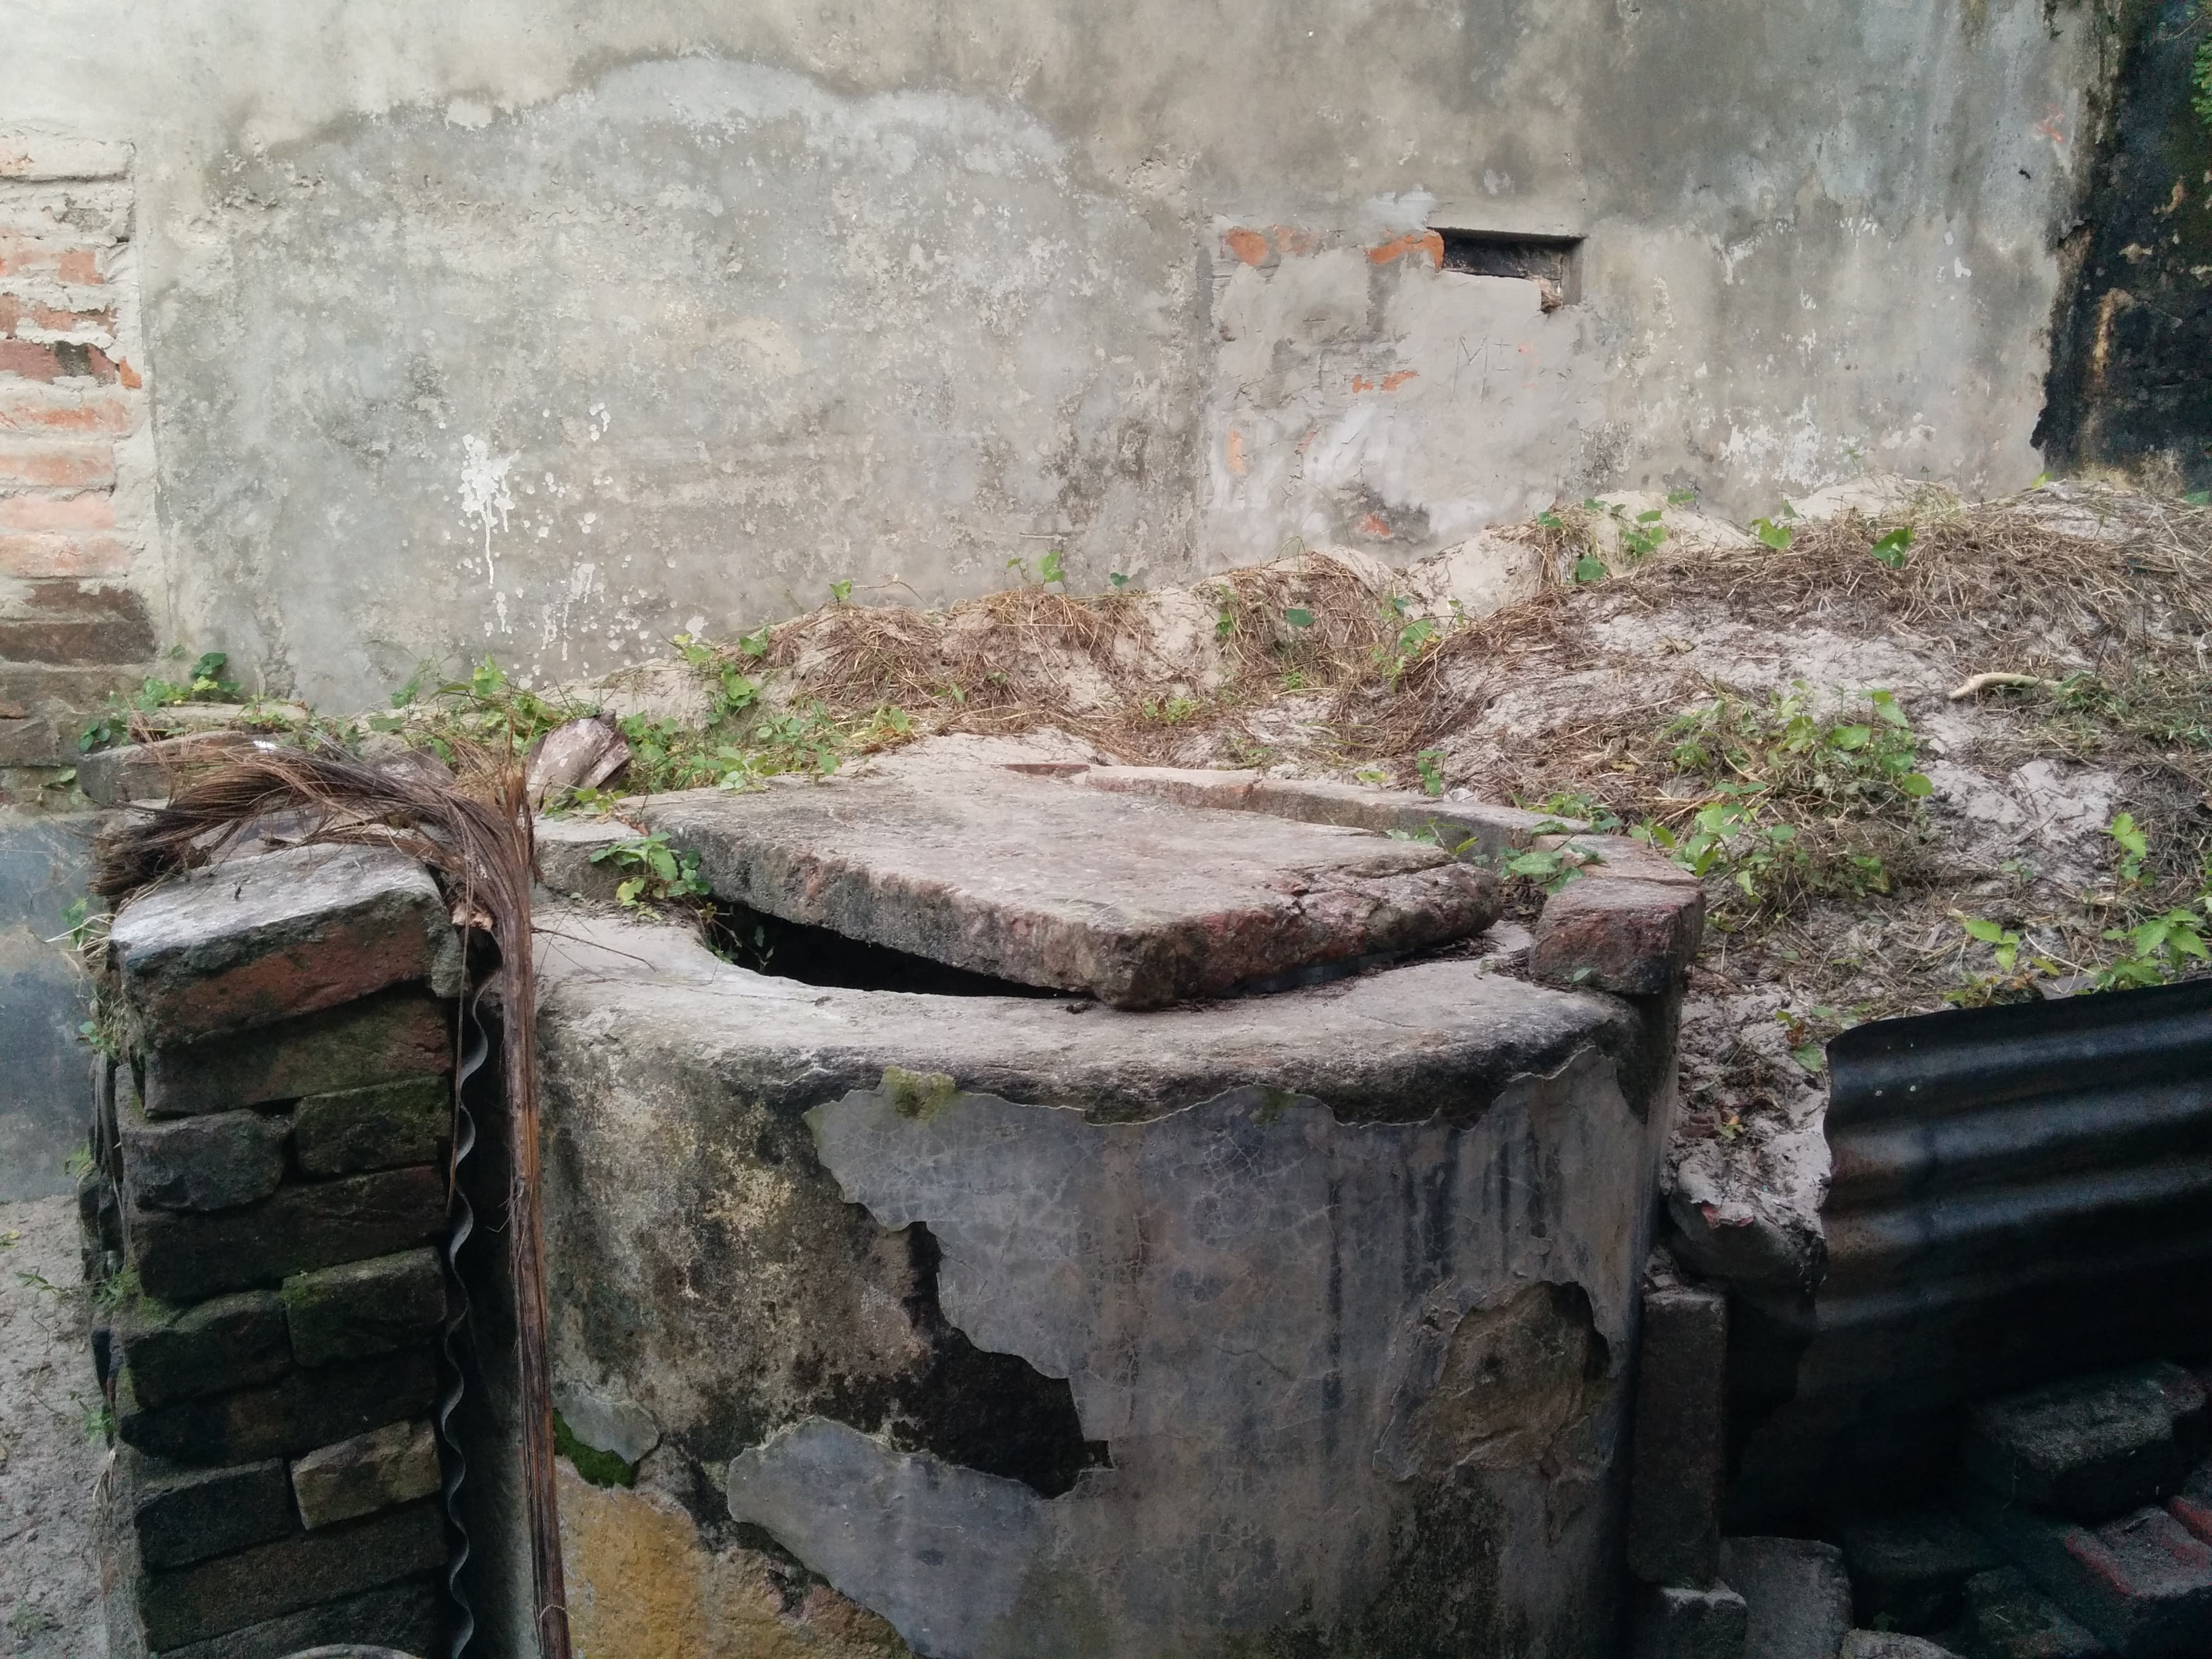 The well he used